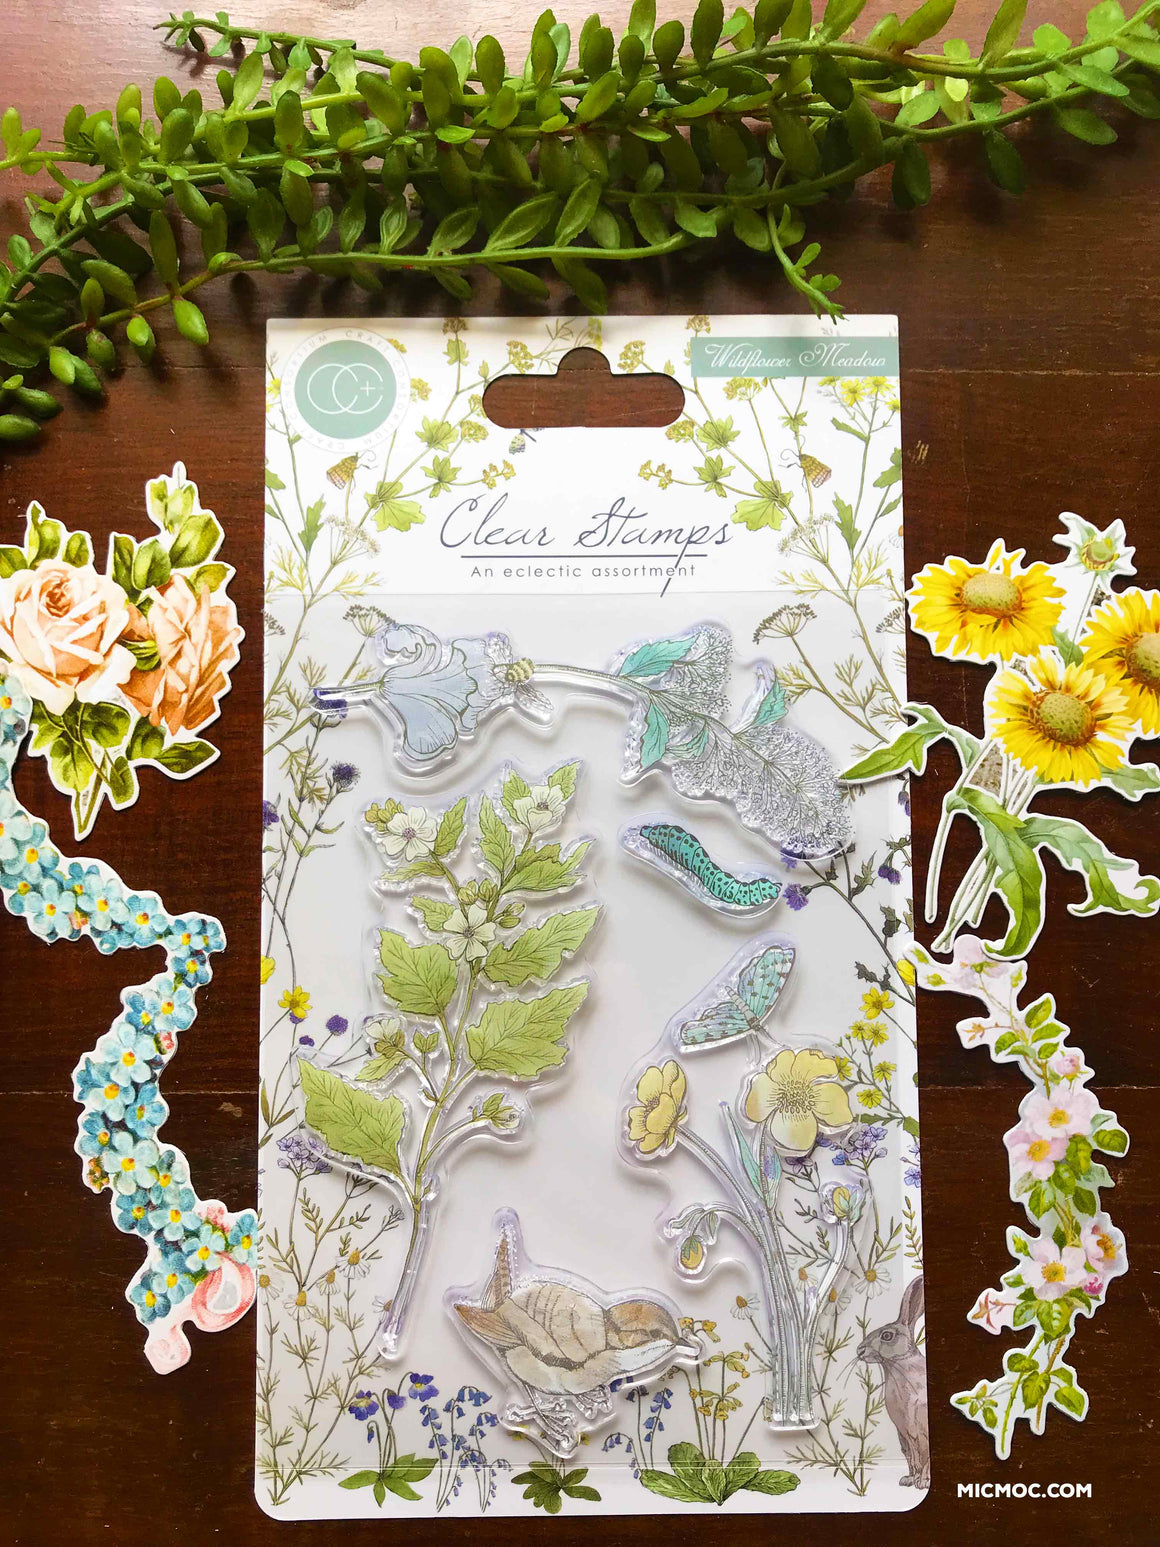 'Wildflower Meadow' A6 Clear Stamp - Craft Consortium from micmoc.com